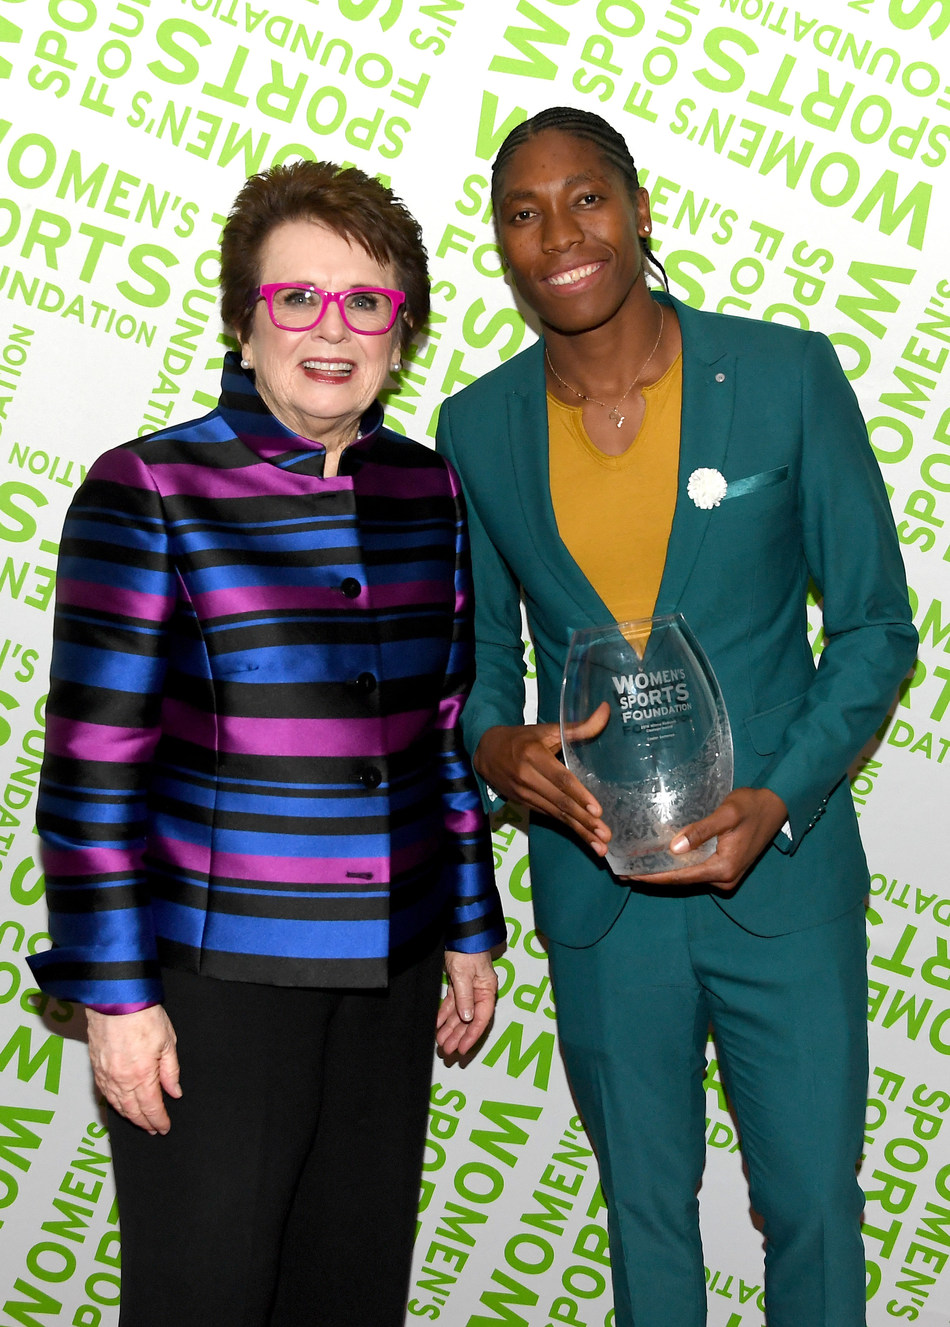 Billie Jean King and Caster Semenya attend The Women's Sports Foundation's 39th Annual Salute To Women In Sports Awards Gala - Inside on October 17, 2018 in New York City. (Photo by Nicholas Hunt/Getty Images for Women's Sports Foundation)